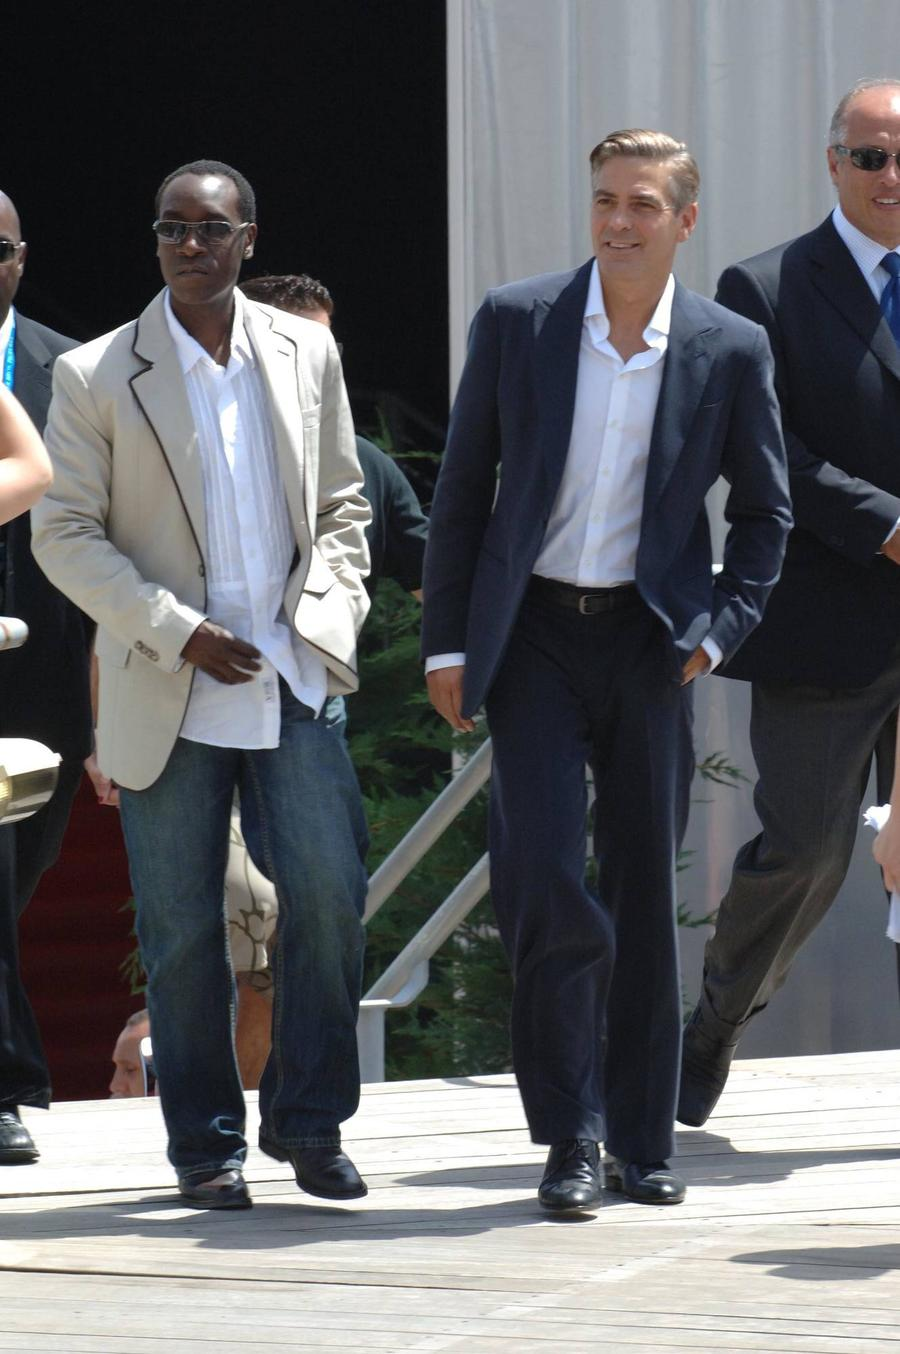 George Clooney And Don Cheadle Unveil Sudanese War Crimes Report